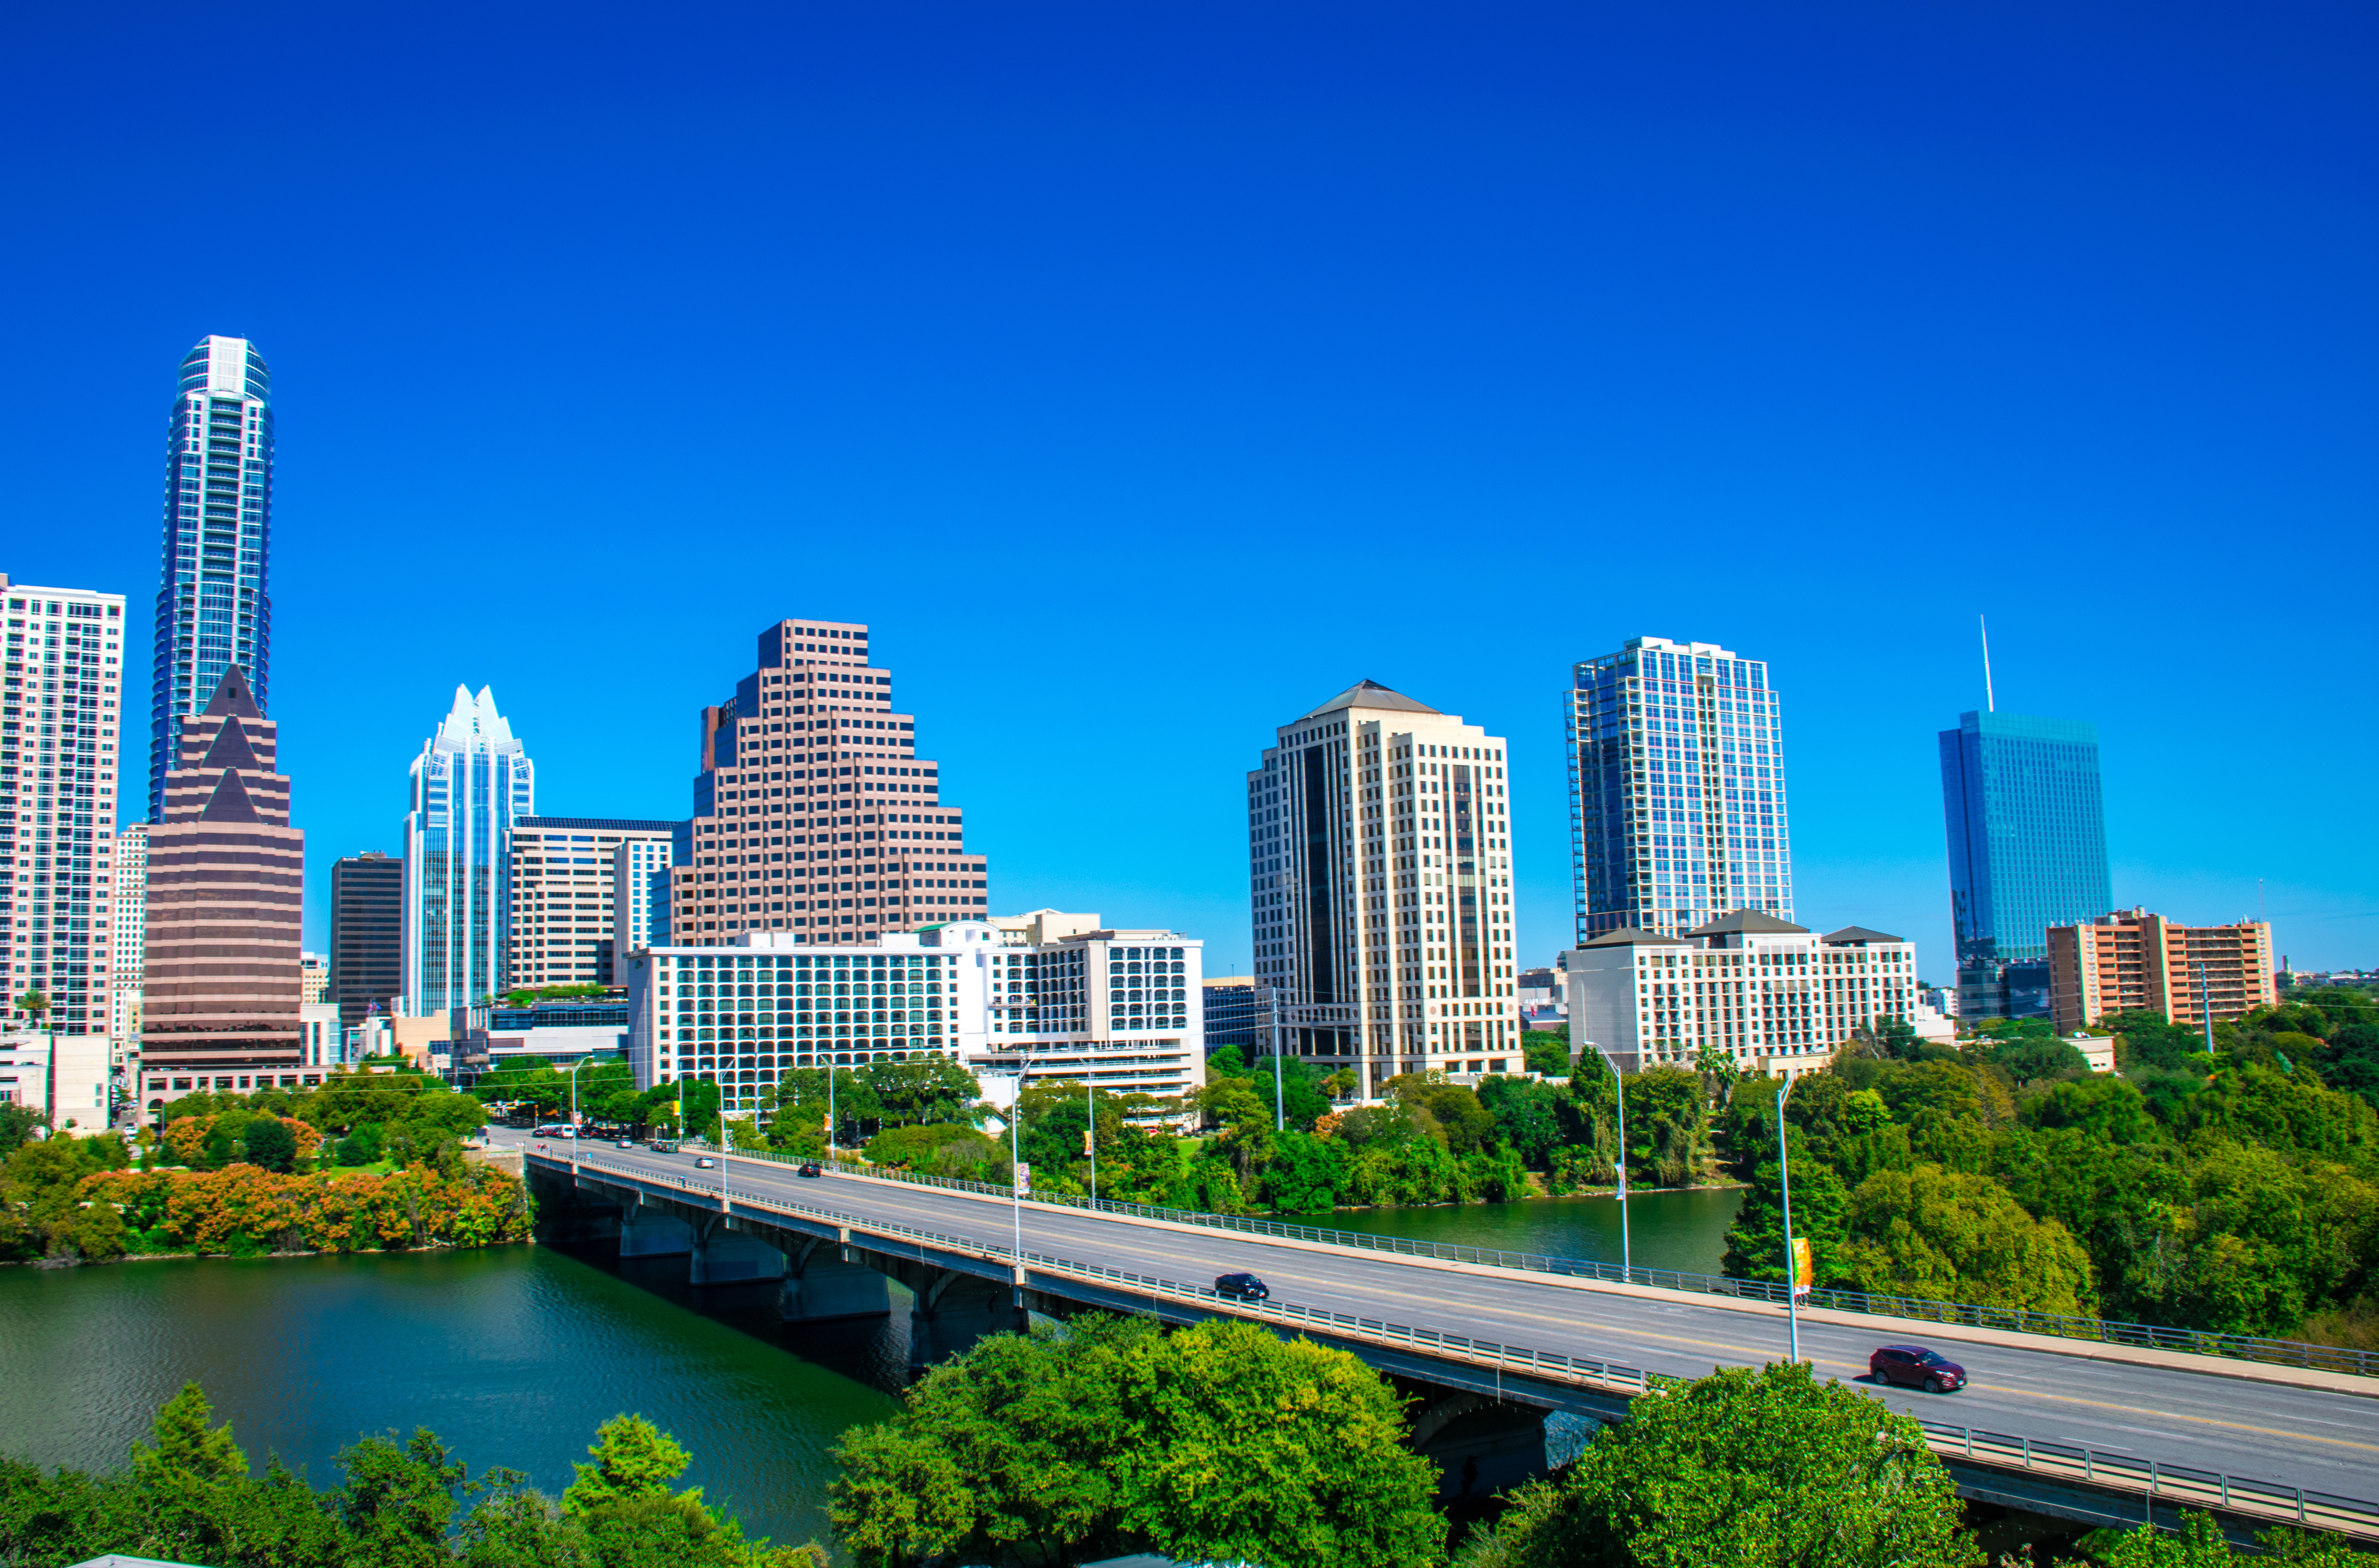 Austin is the best place to live in the country: U.S. News